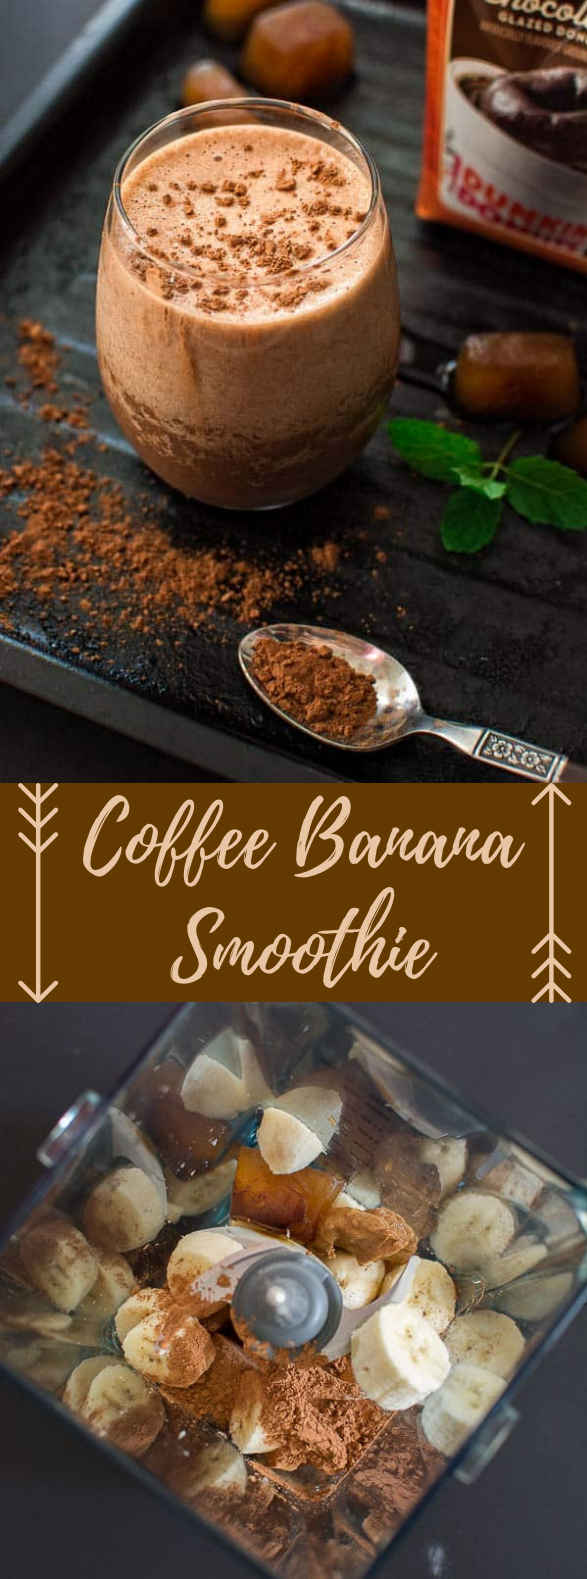 COFFEE BANANA SMOOTHIE #choffeedrink #smoothies